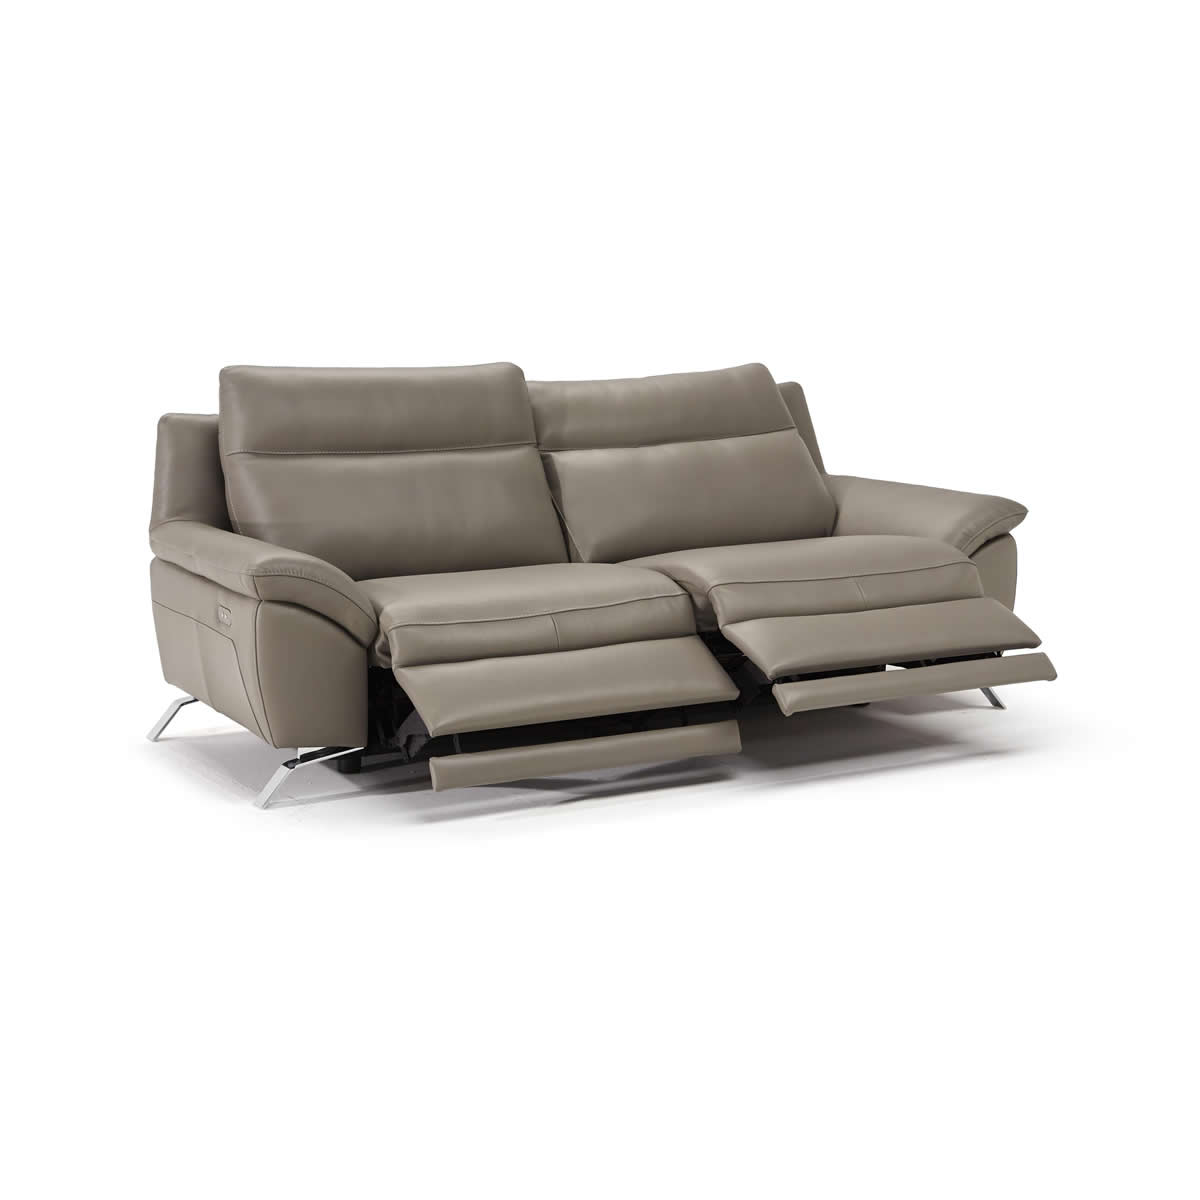 leather sofa repair nyc hotel istanbul contact natuzzi orlando loveseat living room loveseats with two